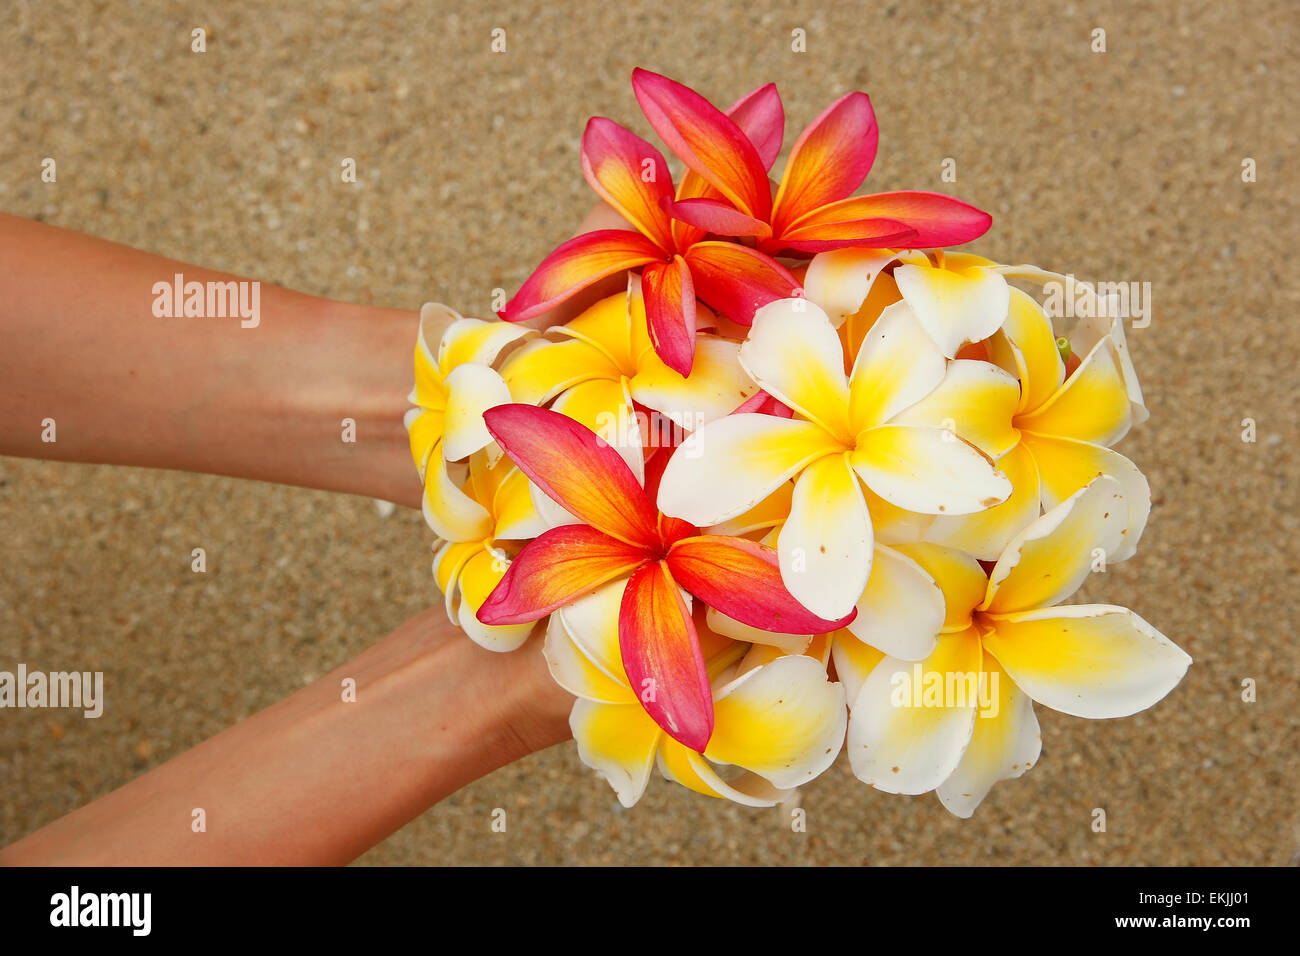 Hands holding white and pink plumeria flowers stock photo royalty hands holding white and pink plumeria flowers dhlflorist Gallery